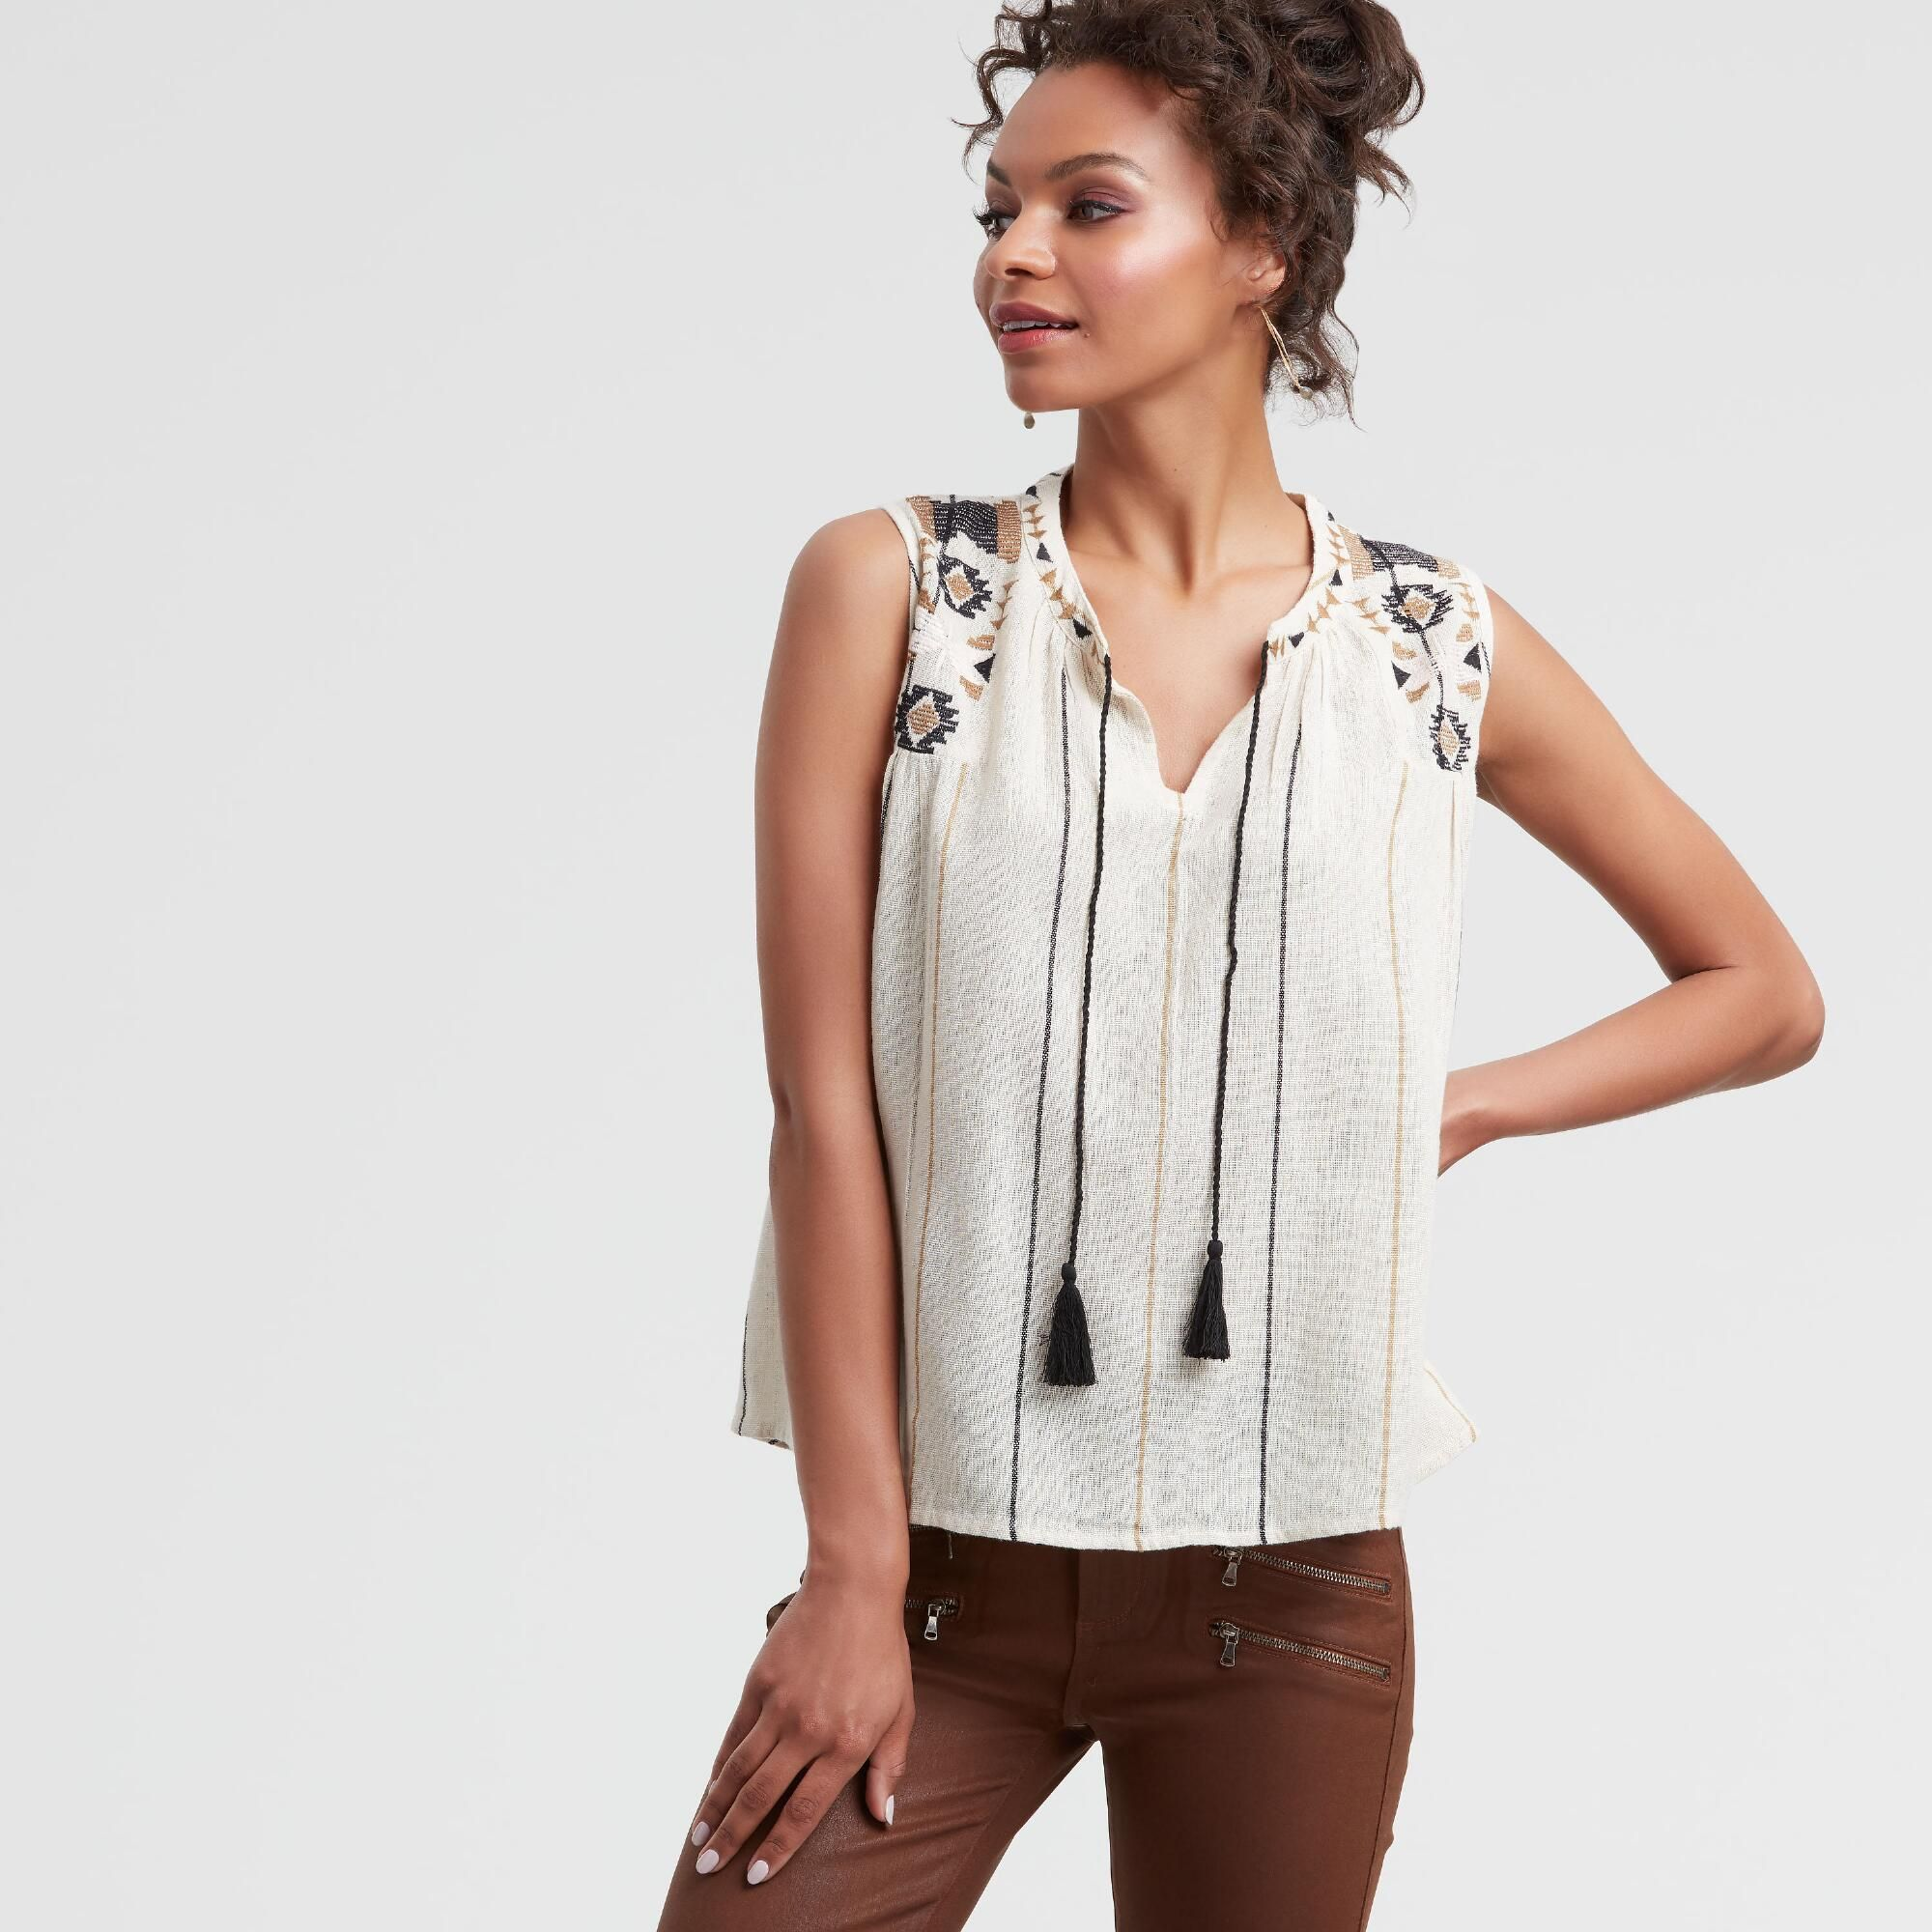 b6ed404d7cc69 Ivory Embroidered Ava Tank Top  White - Lgxlg by World Market in ...